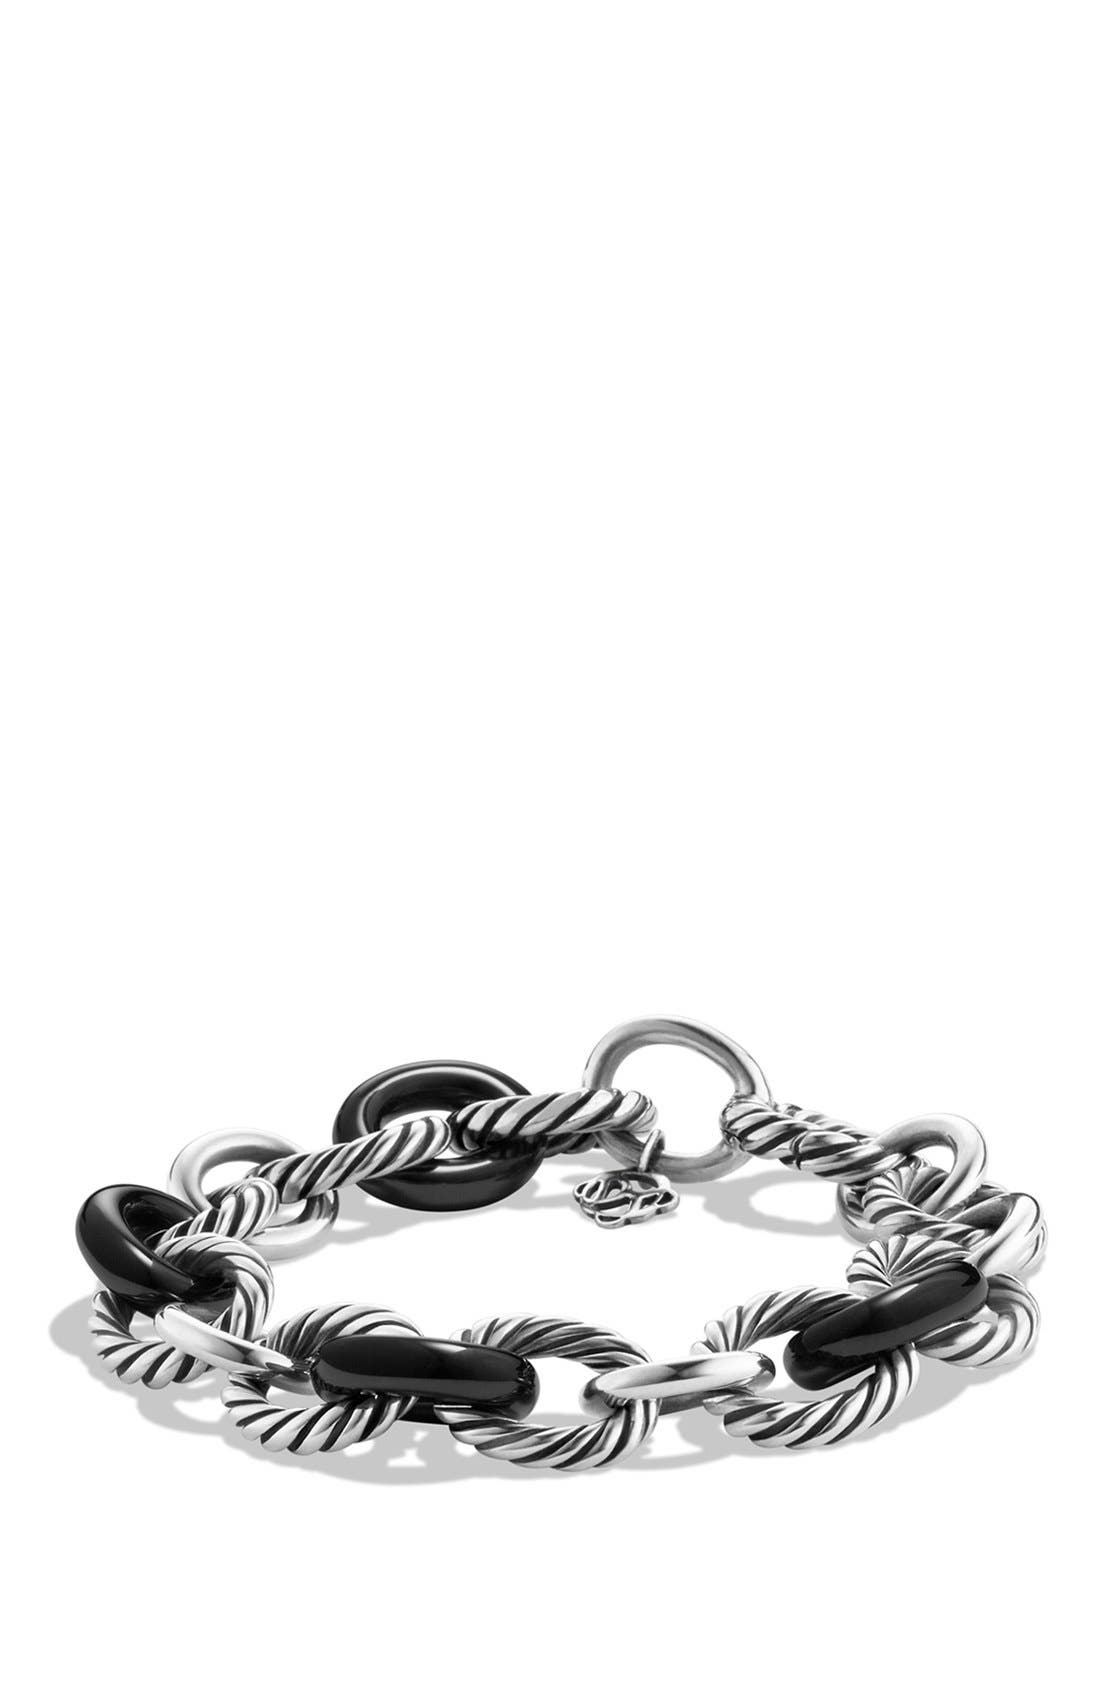 David Yurman 'Oval' Large Link Bracelet